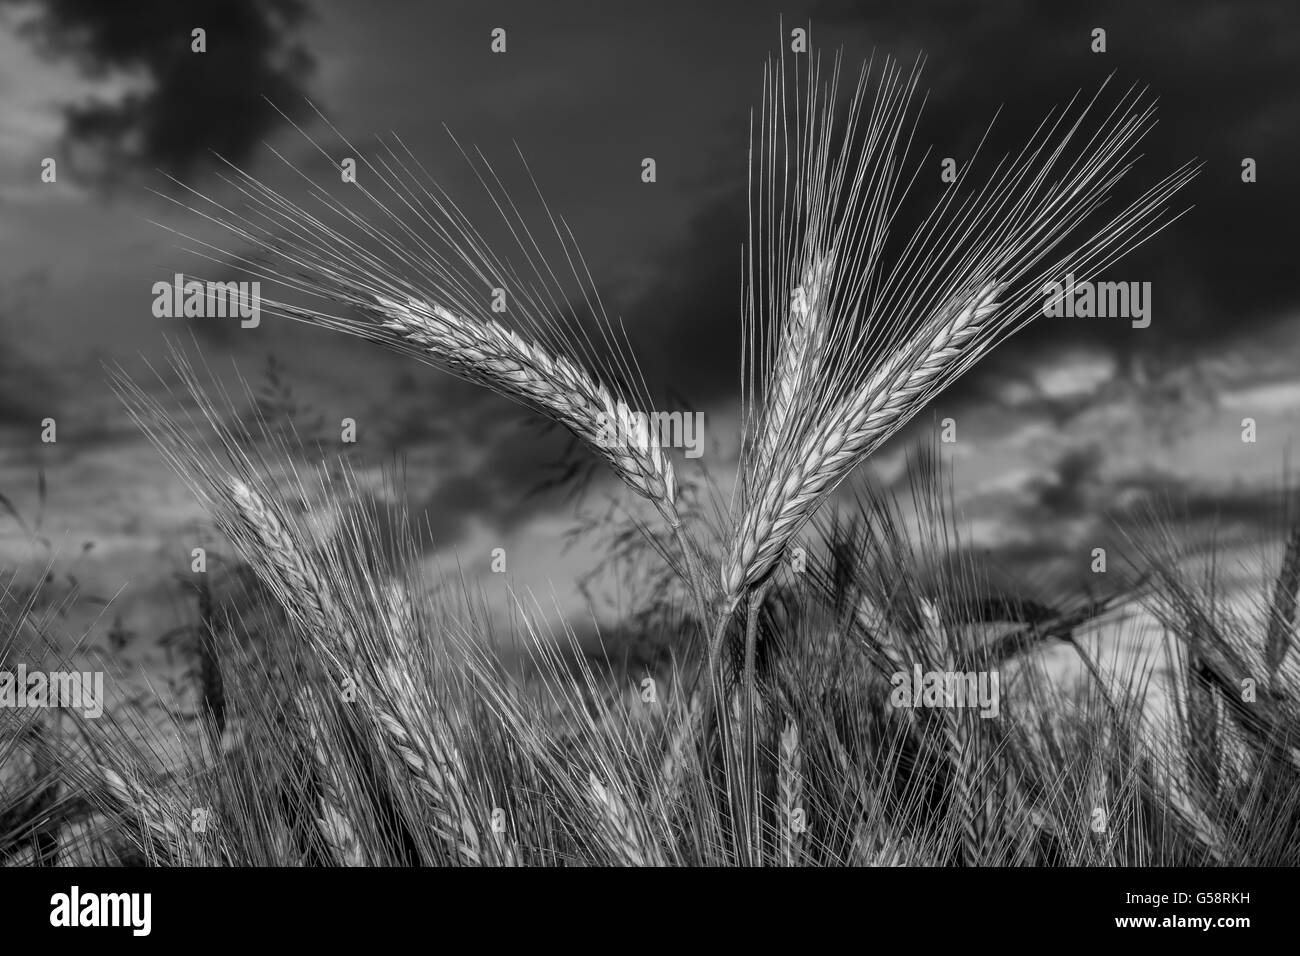 Barley in the field, closeup, selective focus on front stems, dark background sky, black and white Stock Photo